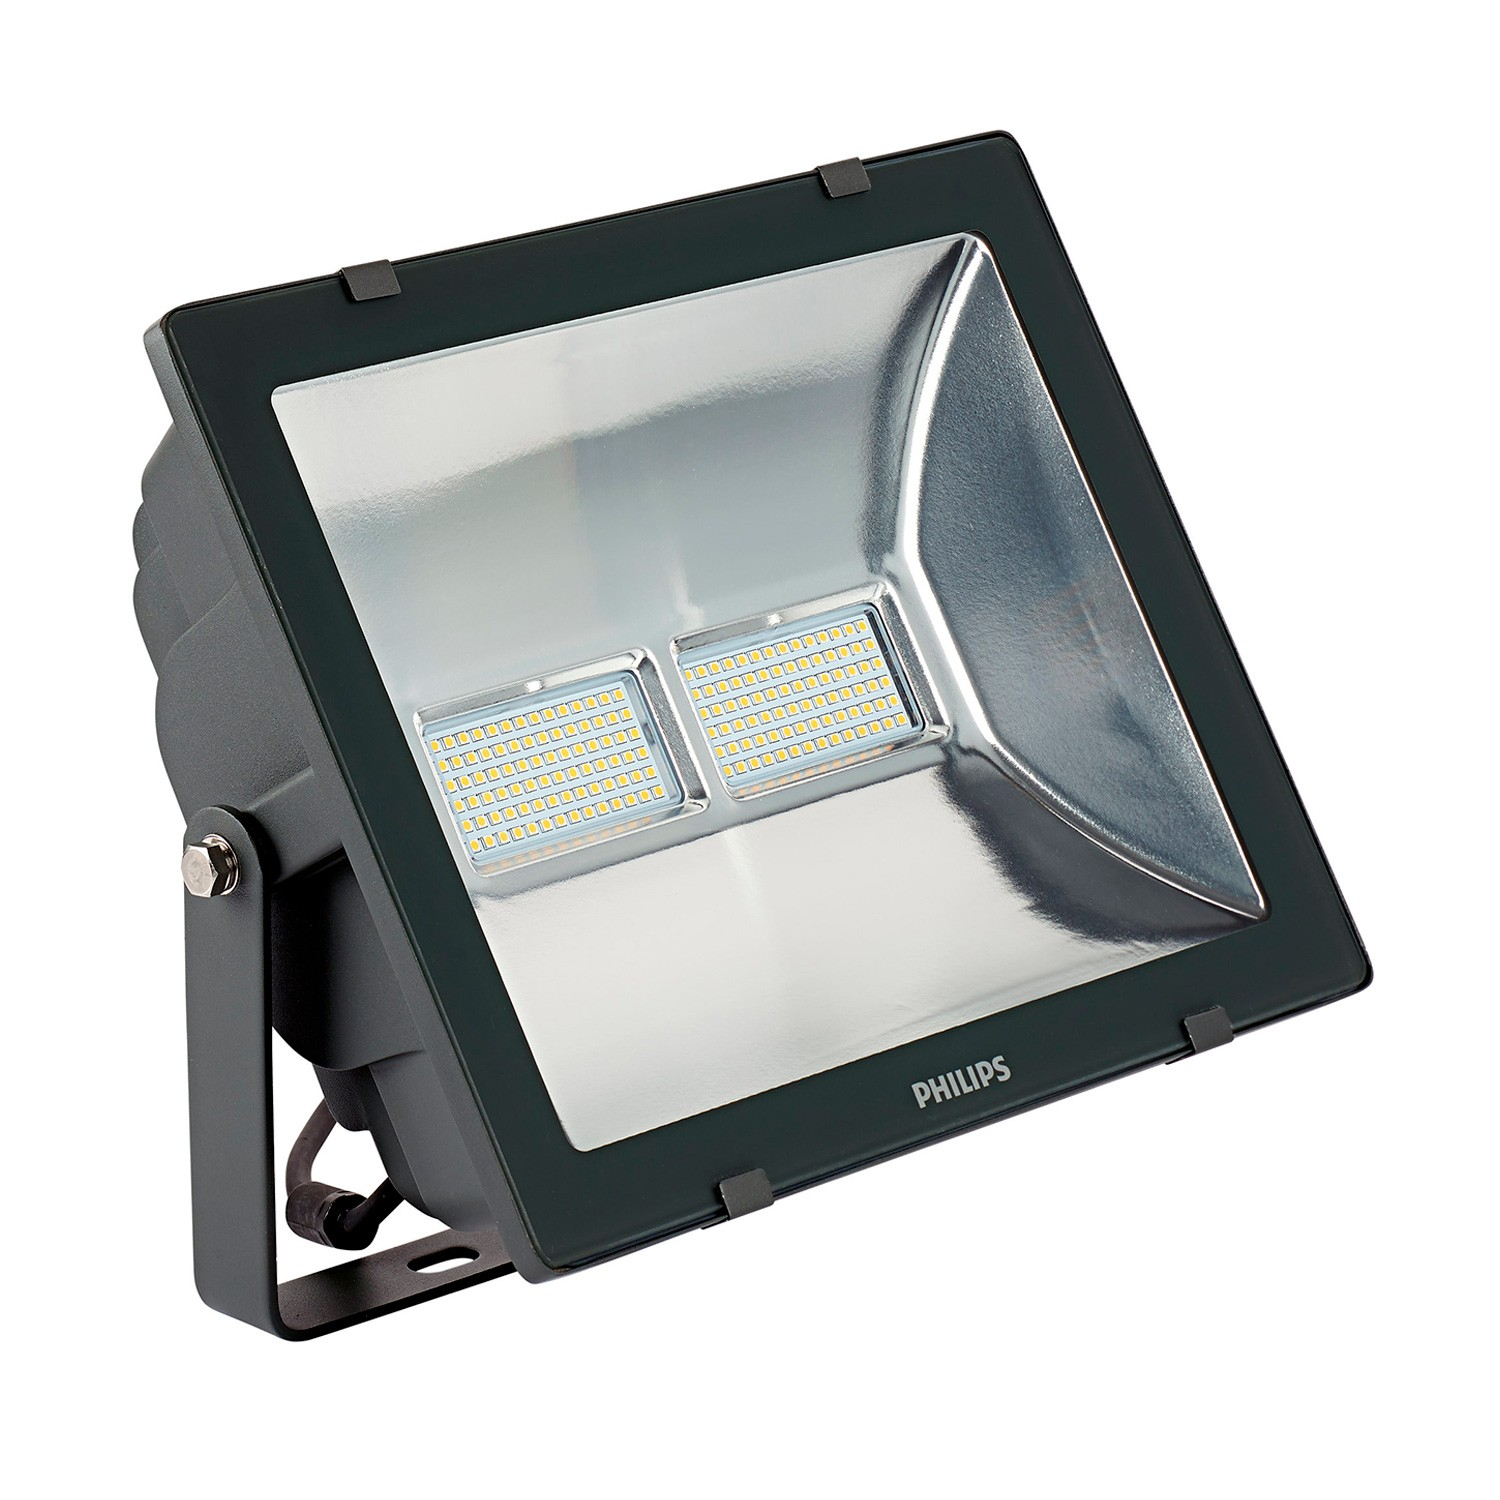 Projecteur Led Exterieur Blanc Projecteur Led Philips Floodlight Maxi 100w Bvp106 Ledkia